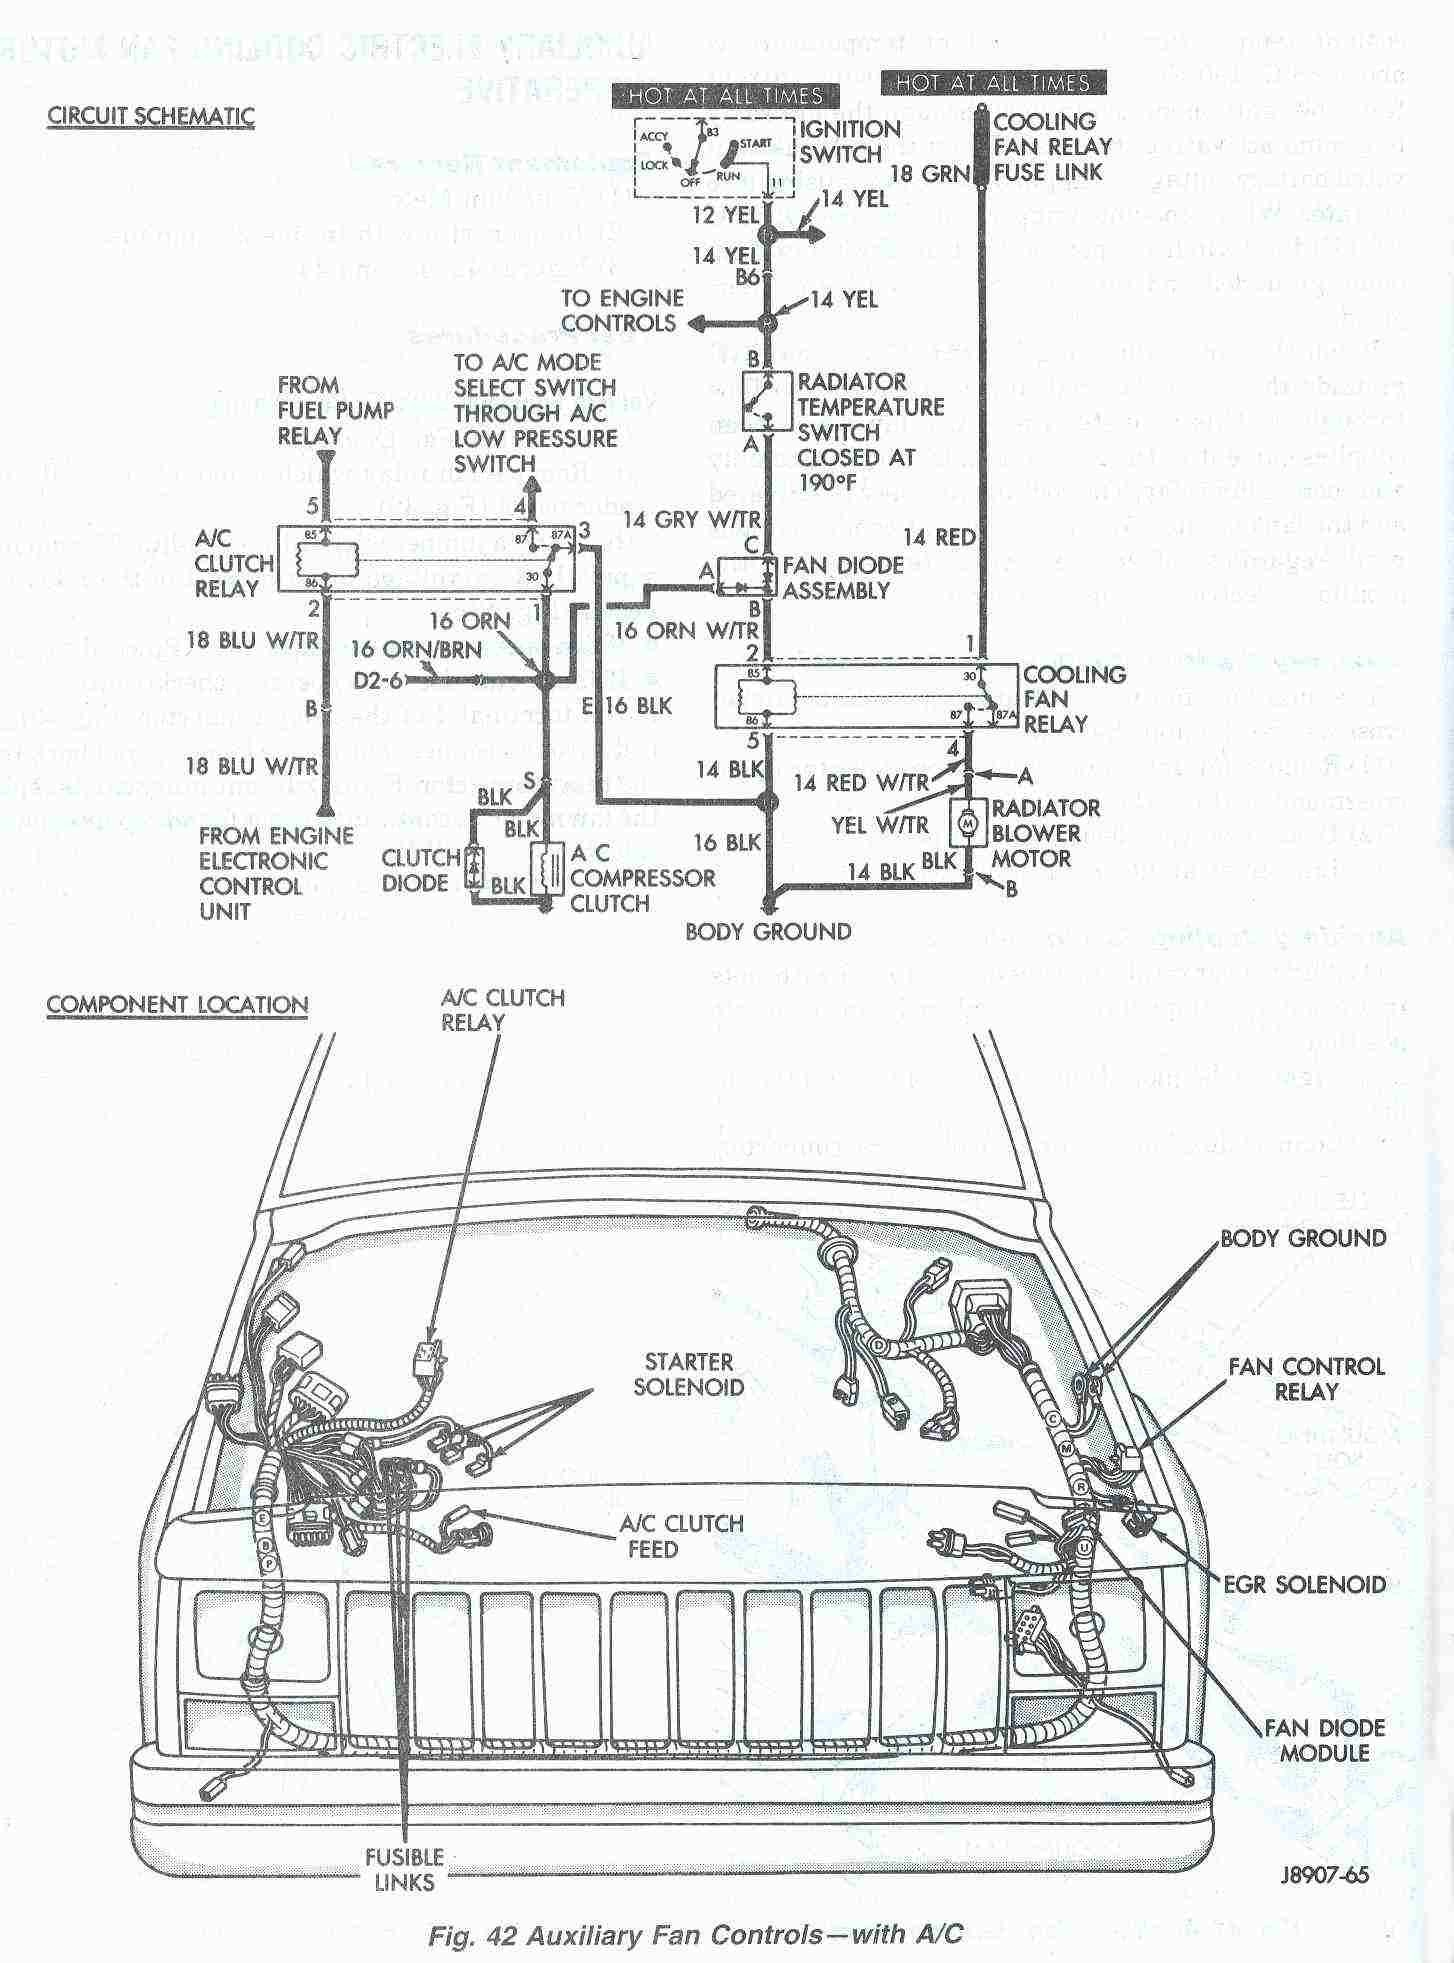 2002 Jeep Grand Cherokee Engine Diagram 2 Jeep Grand Cherokee Wiring Diagram Image Of 2002 Jeep Grand Cherokee Engine Diagram 2 2005 Jeep Grand Cherokee Trailer Wiring Diagram Collection